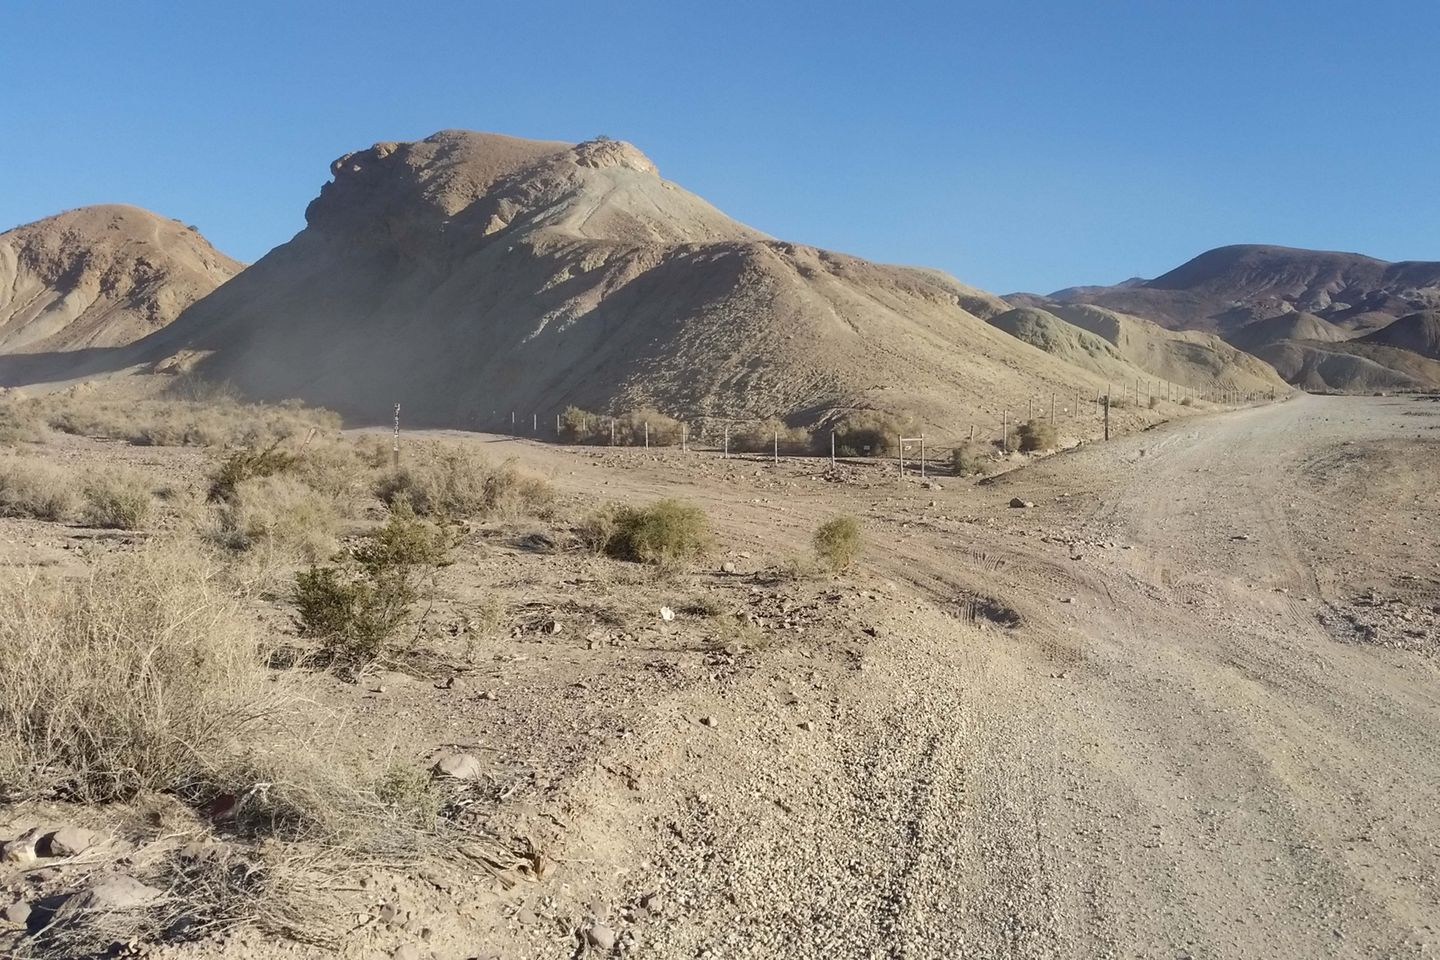 Mule Canyon - Waypoint 2: Phillips Canyon West / Camping Area